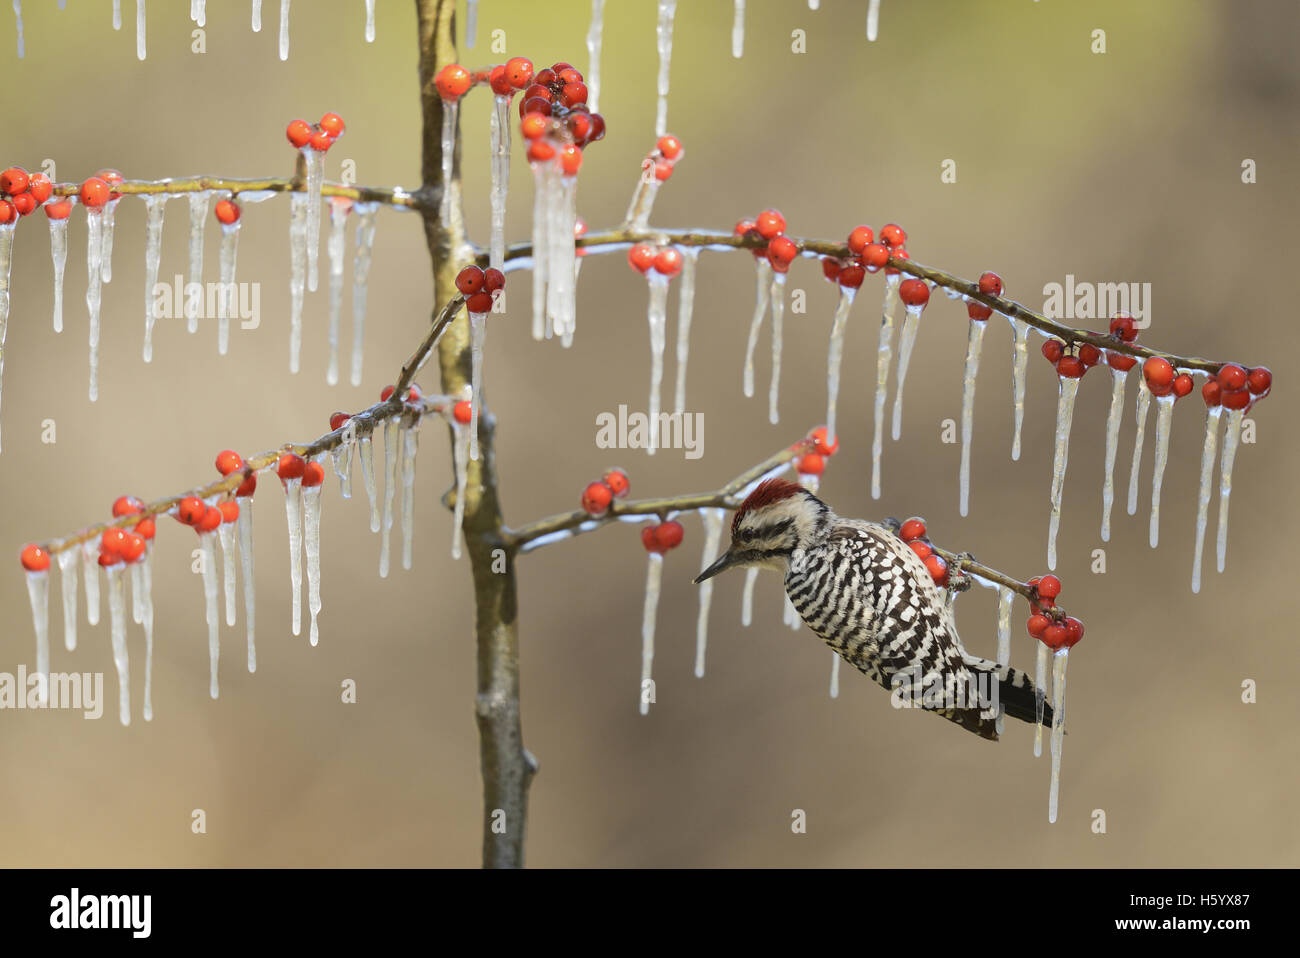 Ladder-backed Woodpecker (Picoides scalaris), adult male perched on icy branch of Possum Haw Holly (Ilex decidua) - Stock Image